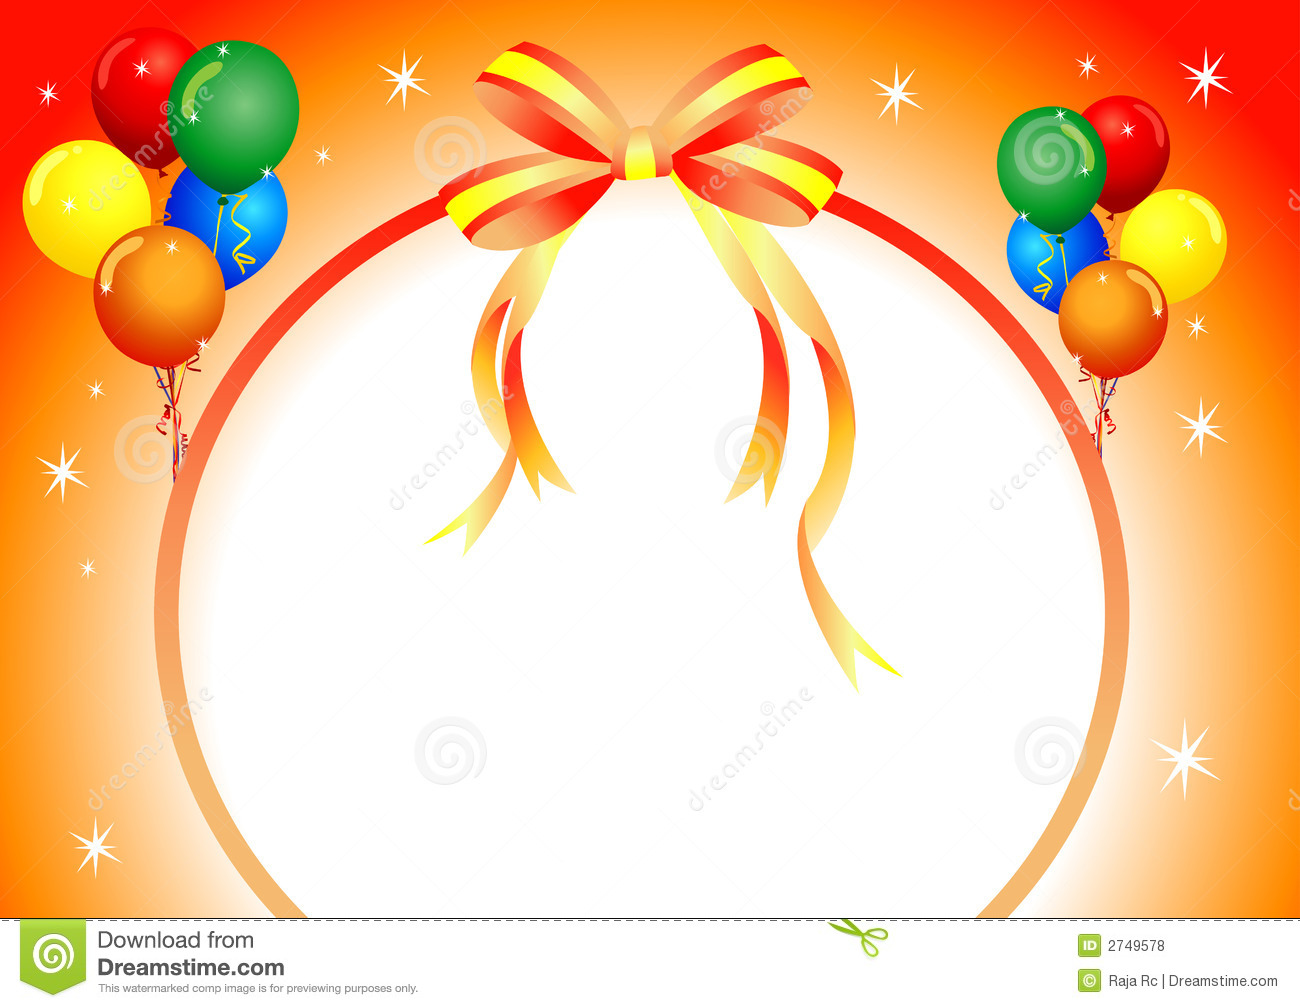 Decoration App Party Background Royalty Free Stock Photos Image 2749578